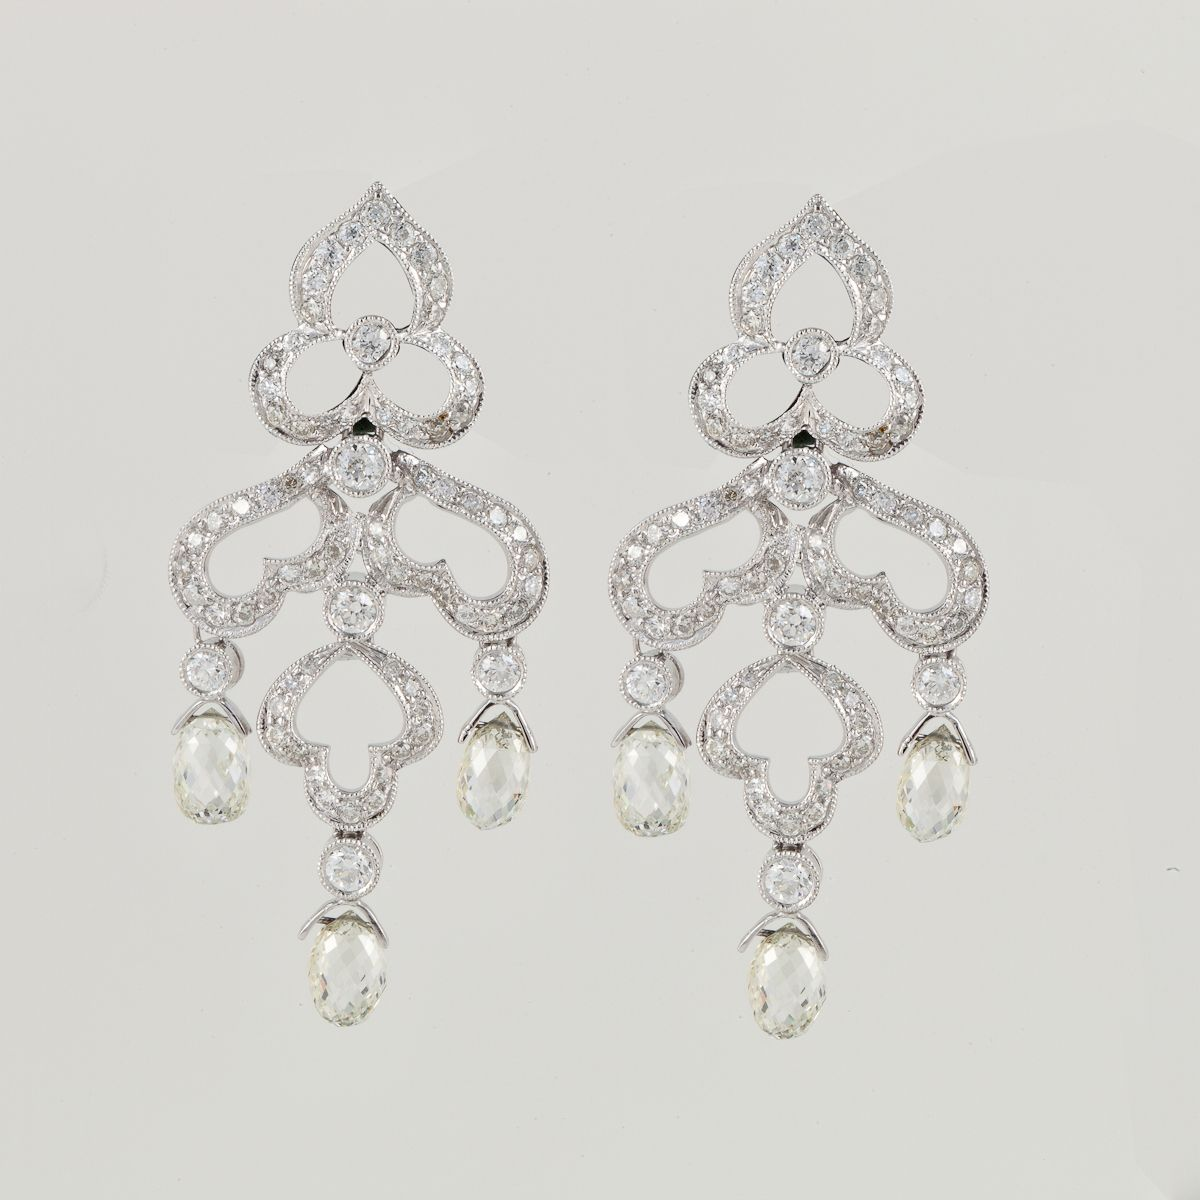 Chandelier earrings in 18k white gold with diamonds perfect